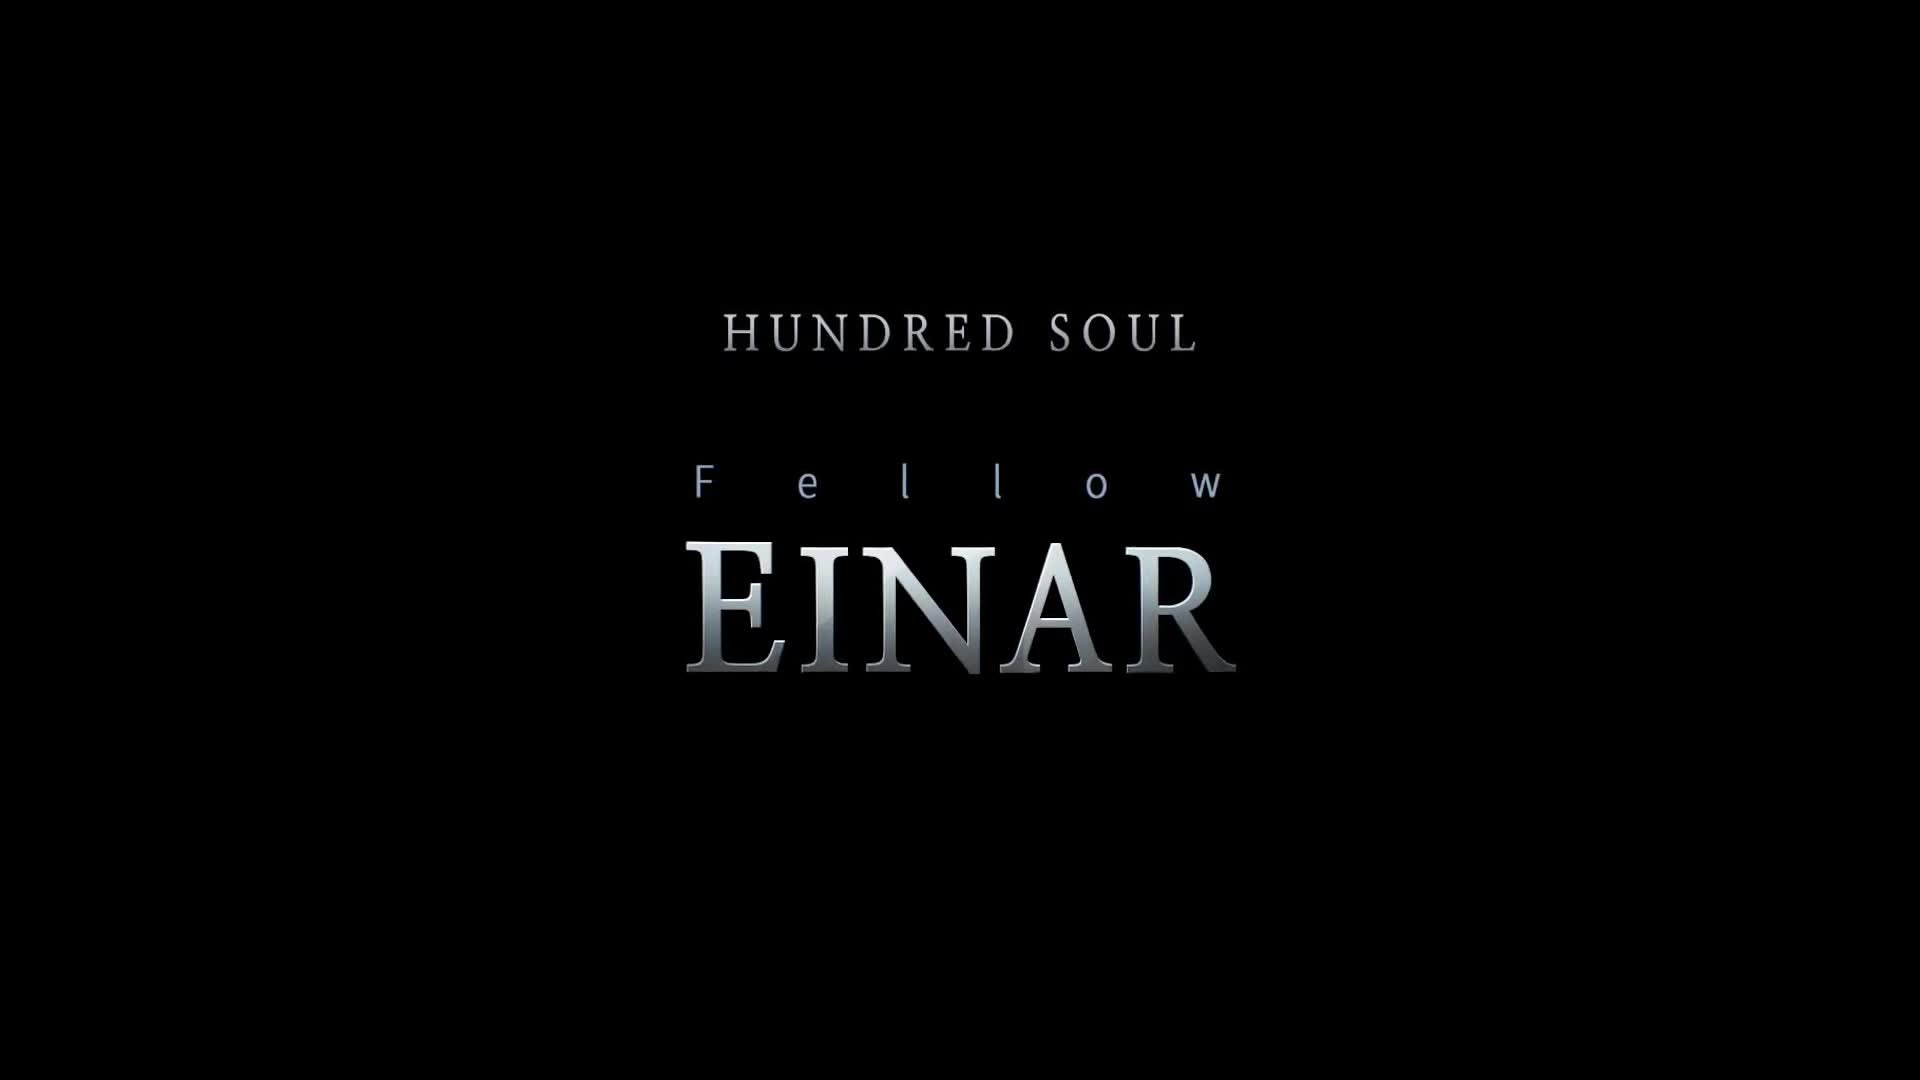 Hundred Soul : The Last Savior: notice - [New Companion] Beastmaster – Einar video cover image 0